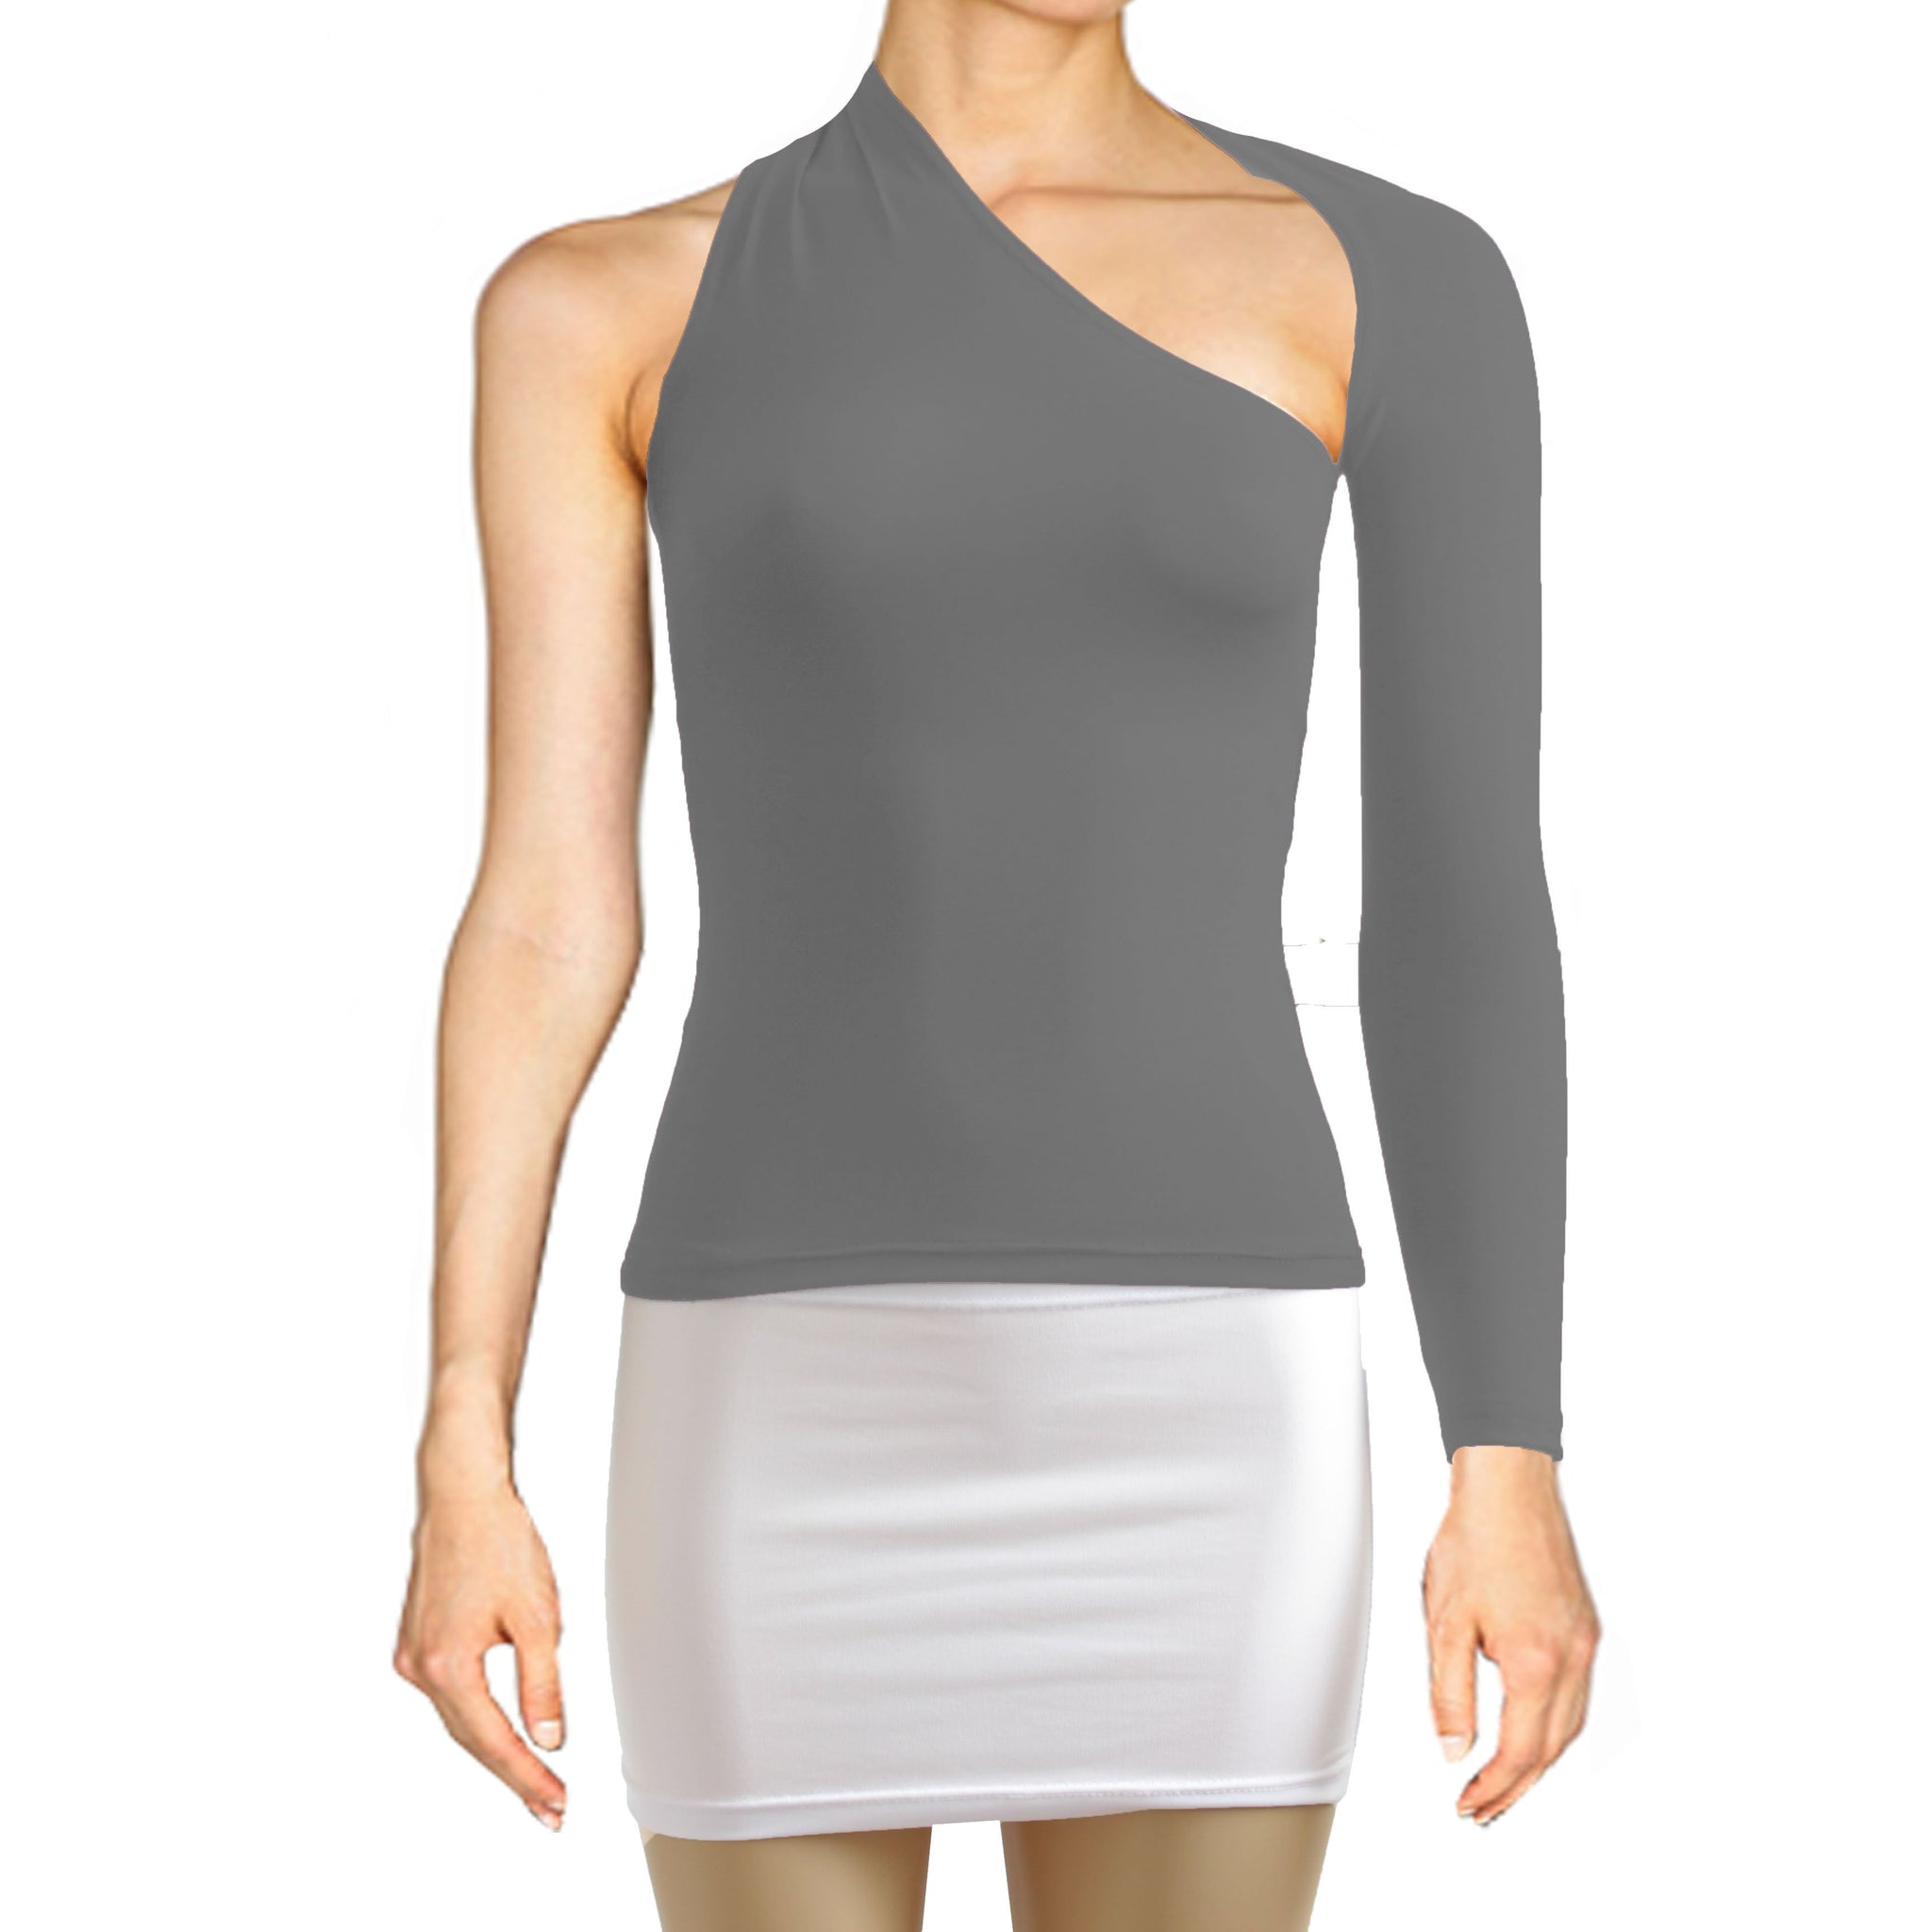 Gray backless top One shoulder shirt Long sleeve sexy top Festival shirt Rave party top